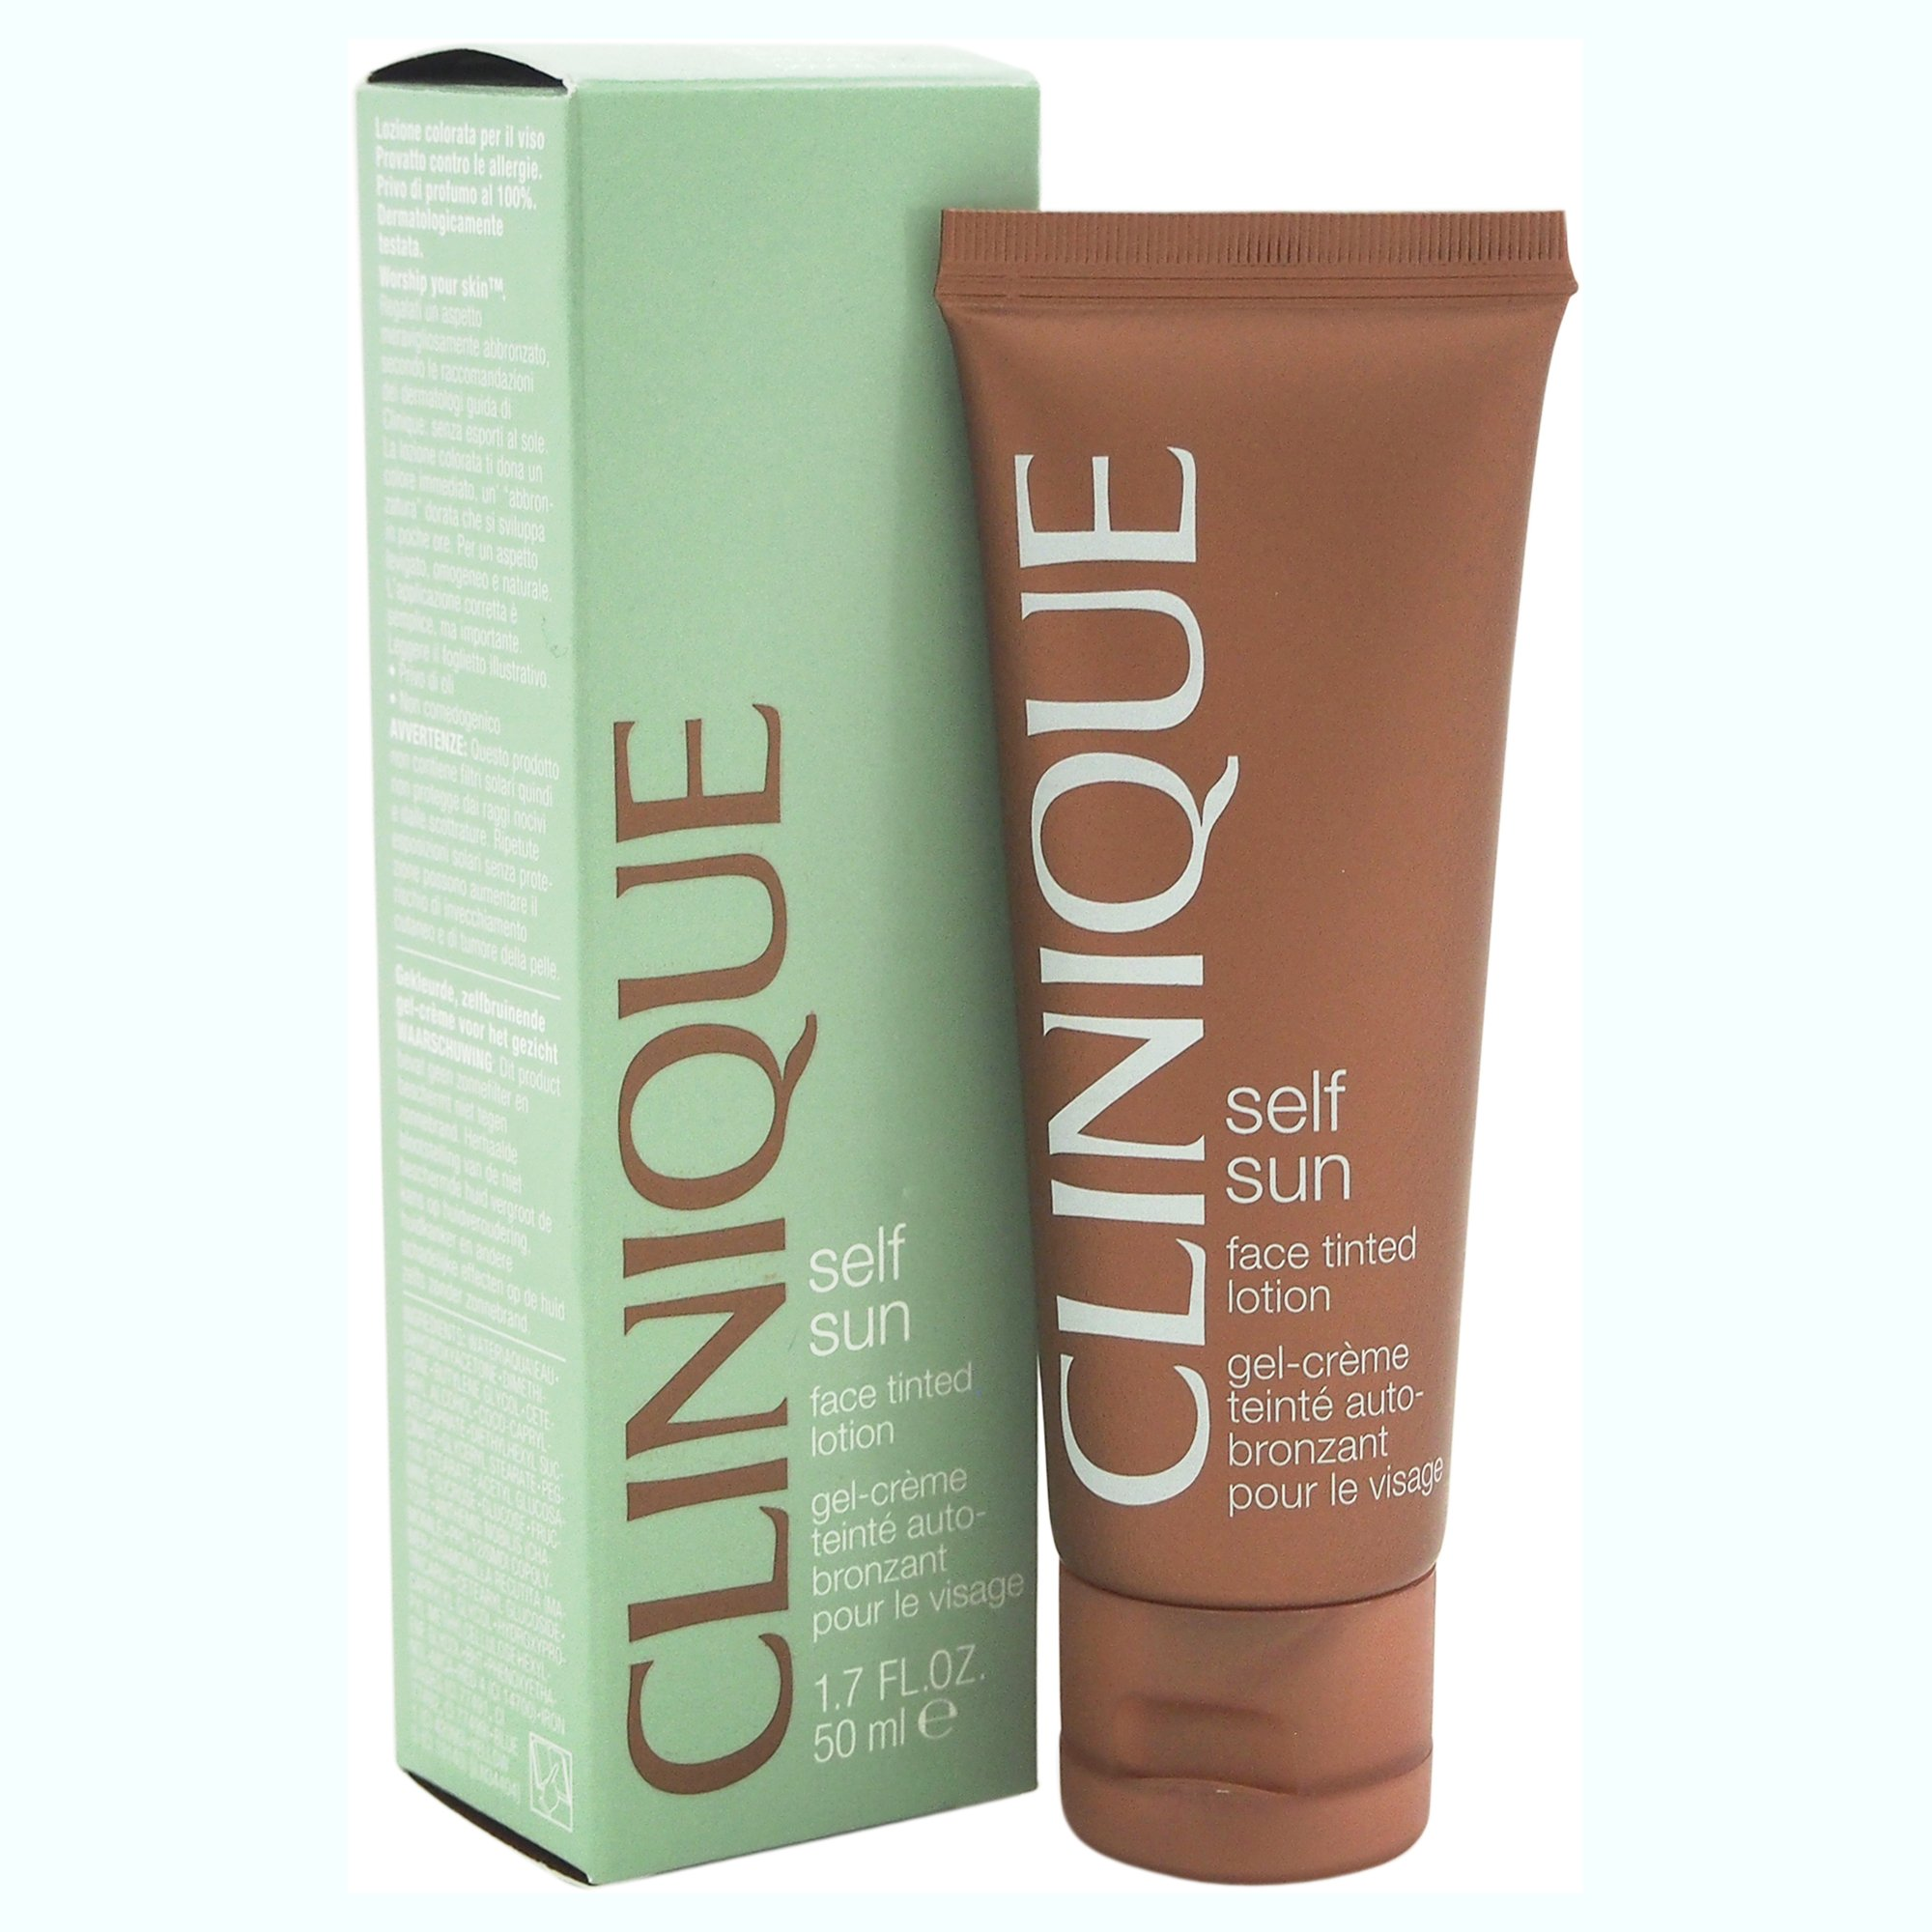 Clinique Self Sun Face Tinted Lotion, 1.7 Ounce by Clinique